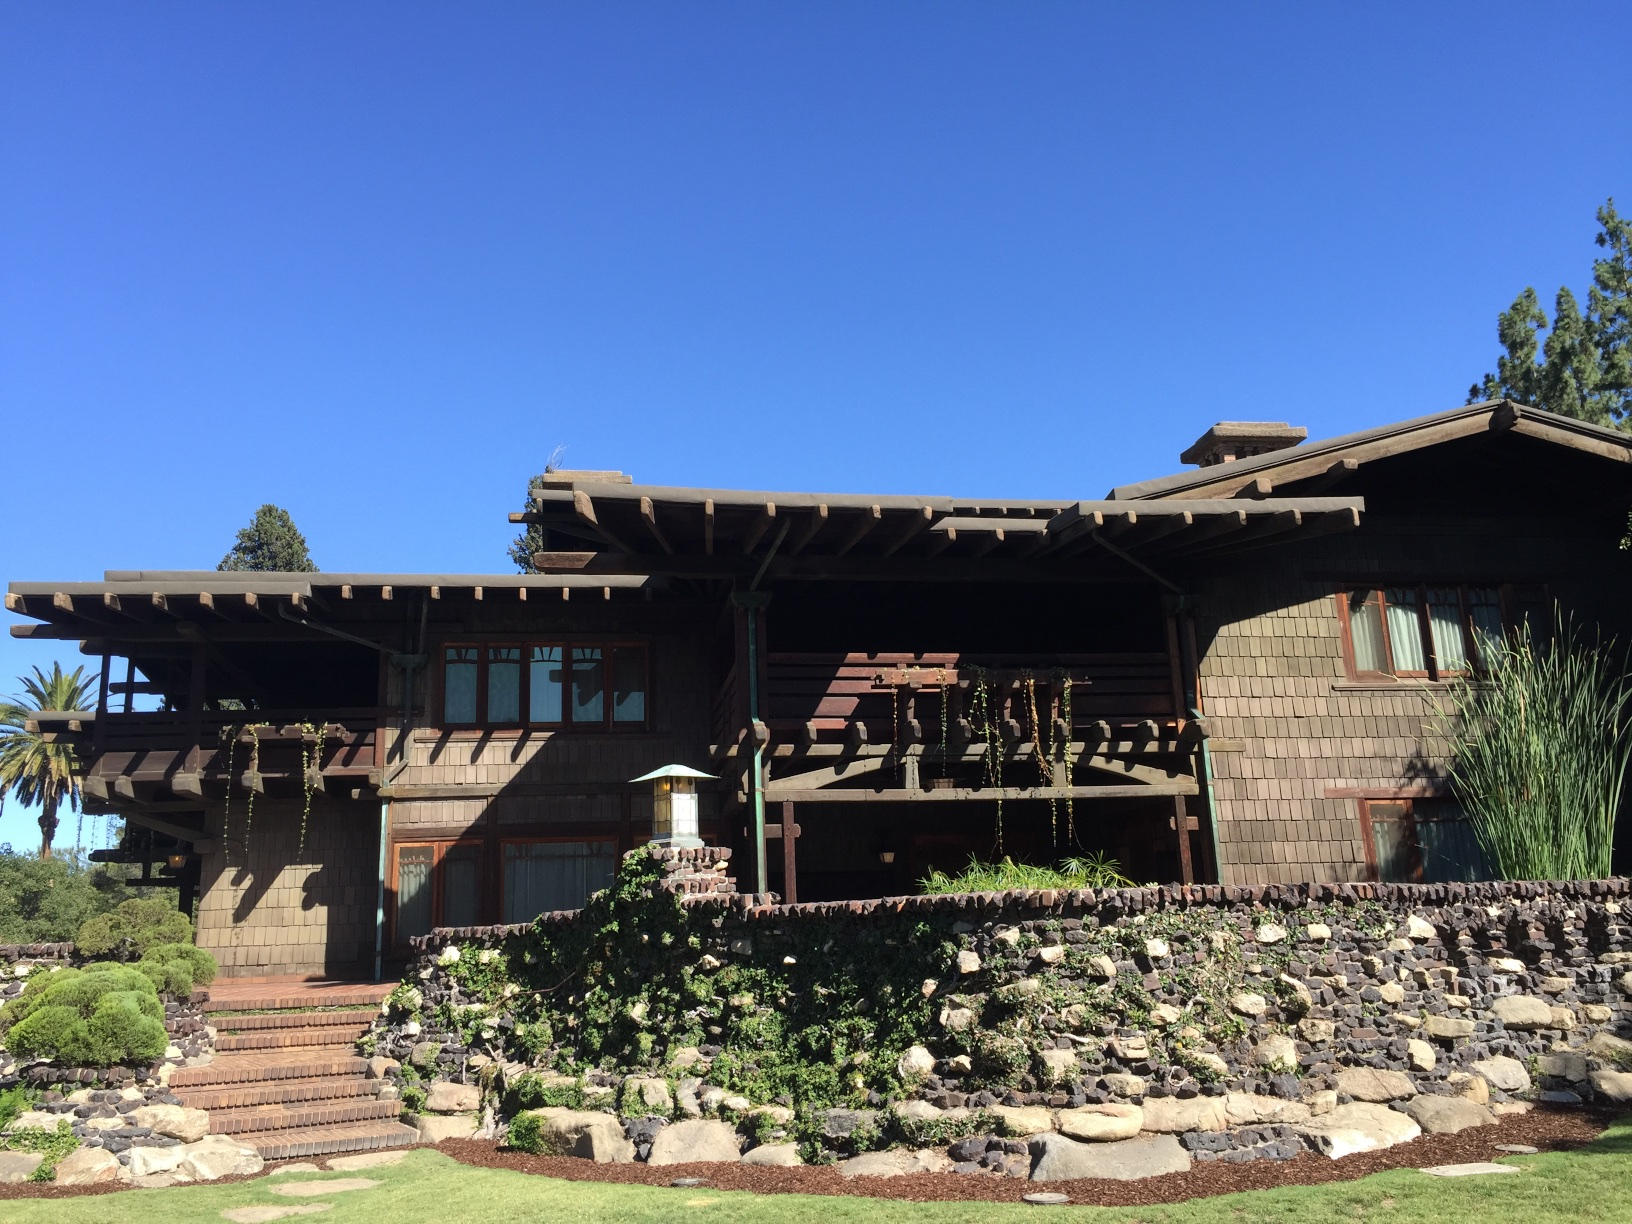 Gamble House in Passadena